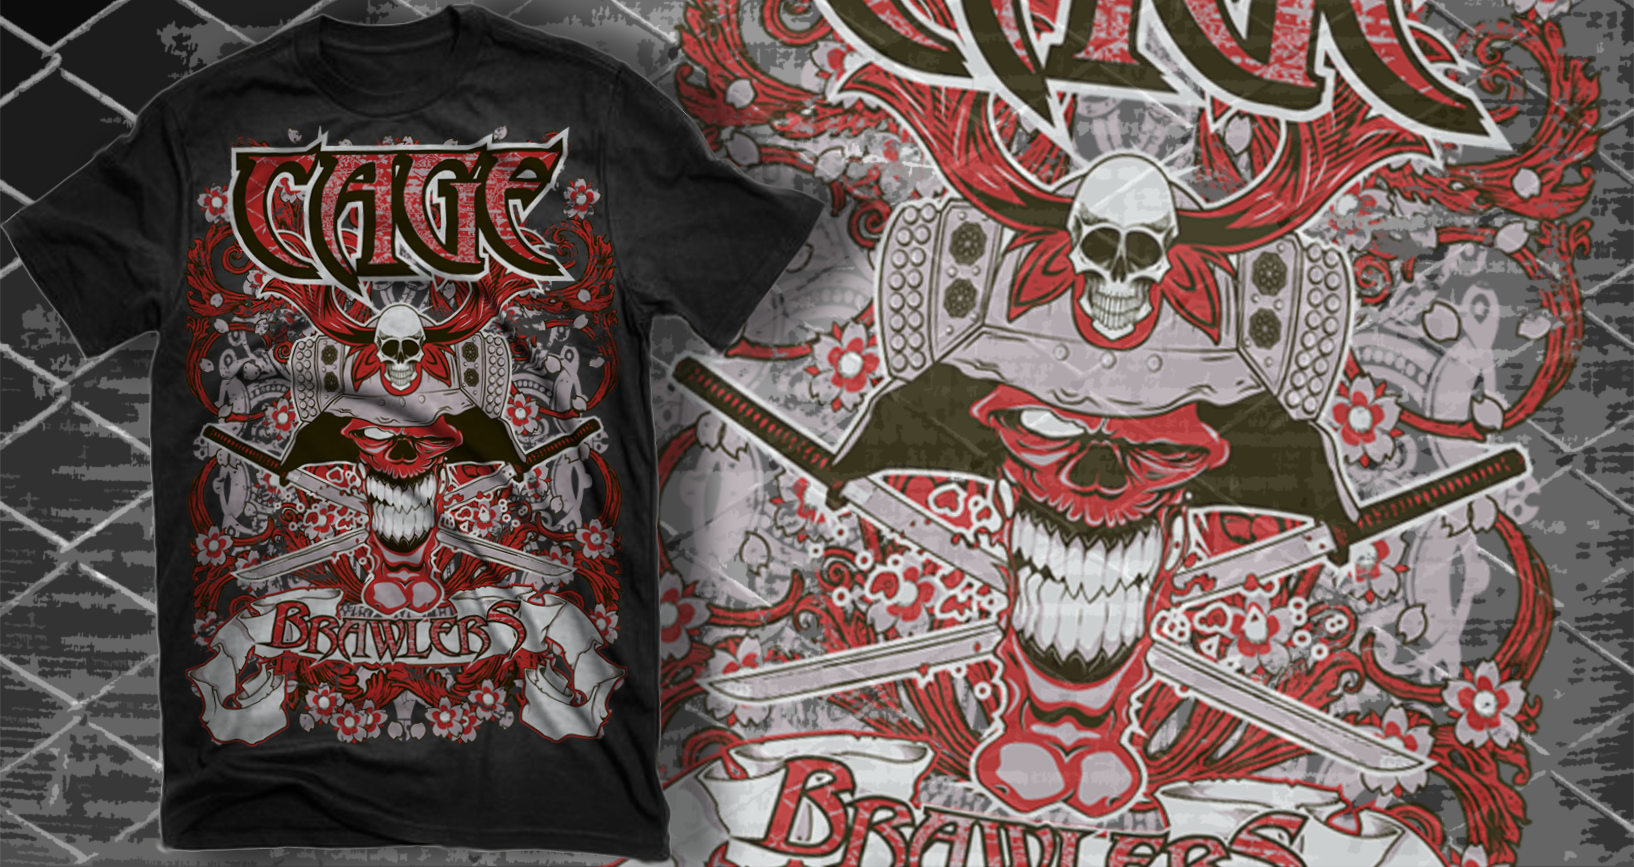 Help Cage Brawlers distinguish ourselves with our first MMA T-Shirt design